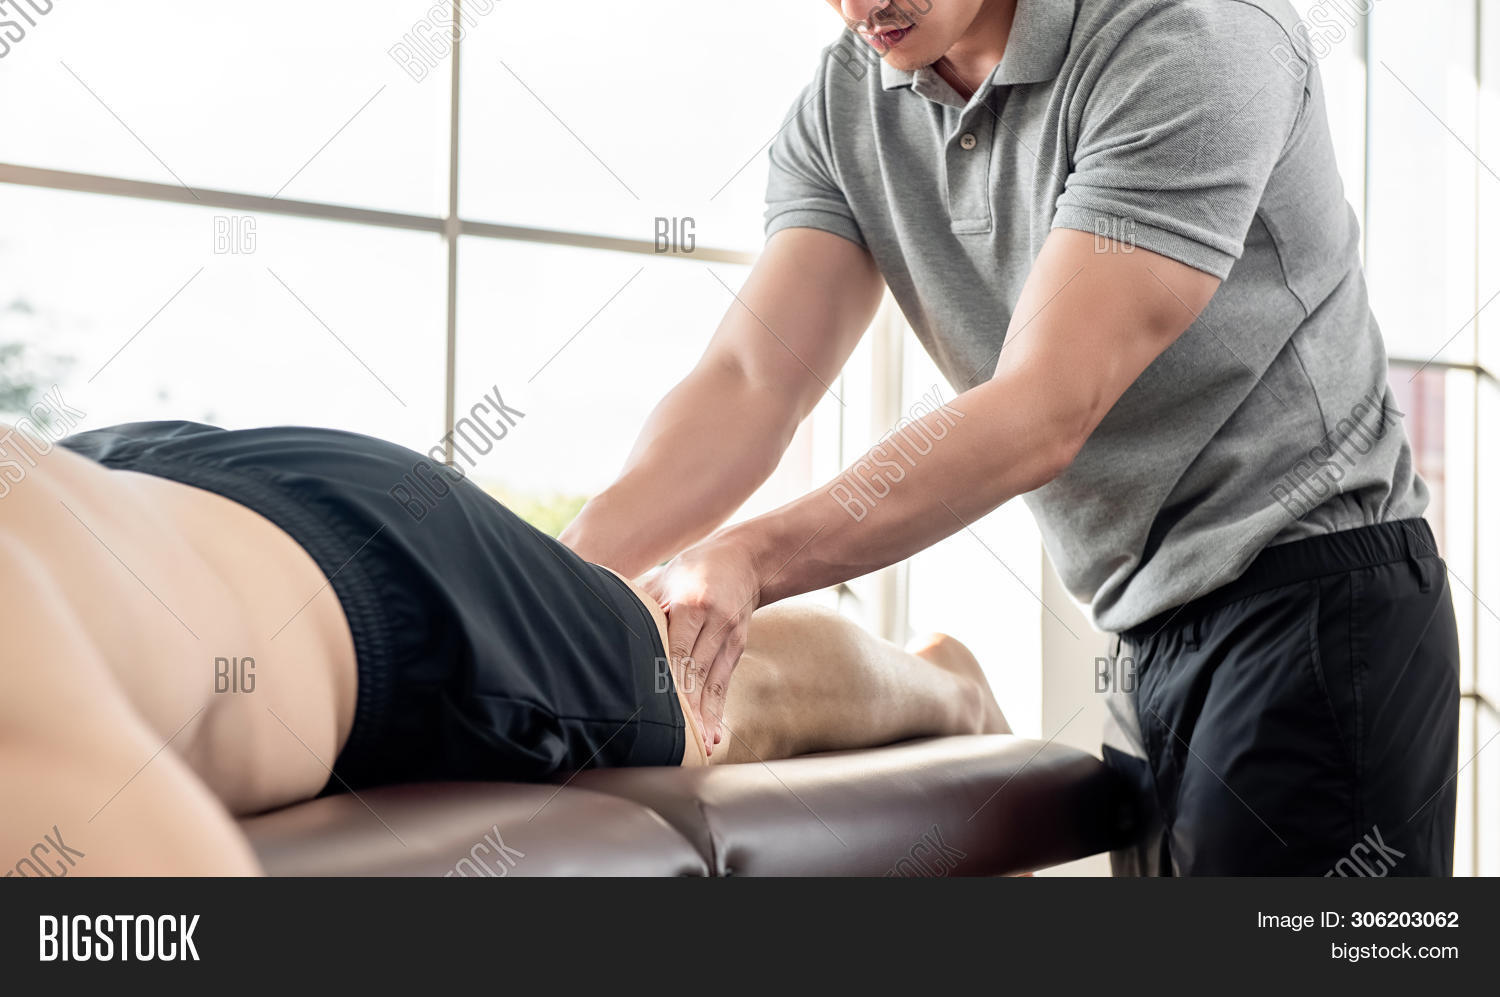 athlete,bed,body,care,clinic,cure,doctor,health,hospital,knead,leg,lower,lying,male,man,massage,masseur,medical,medicine,muscle,pain,part,patient,people,petrissage,physical,physio,physiotherapist,physiotherapy,press,professional,recovery,reflexology,rehab,rehabilitation,relax,relaxation,relief,relieve,remedy,specialist,sports,swedish,thai,therapist,therapy,treat,treatment